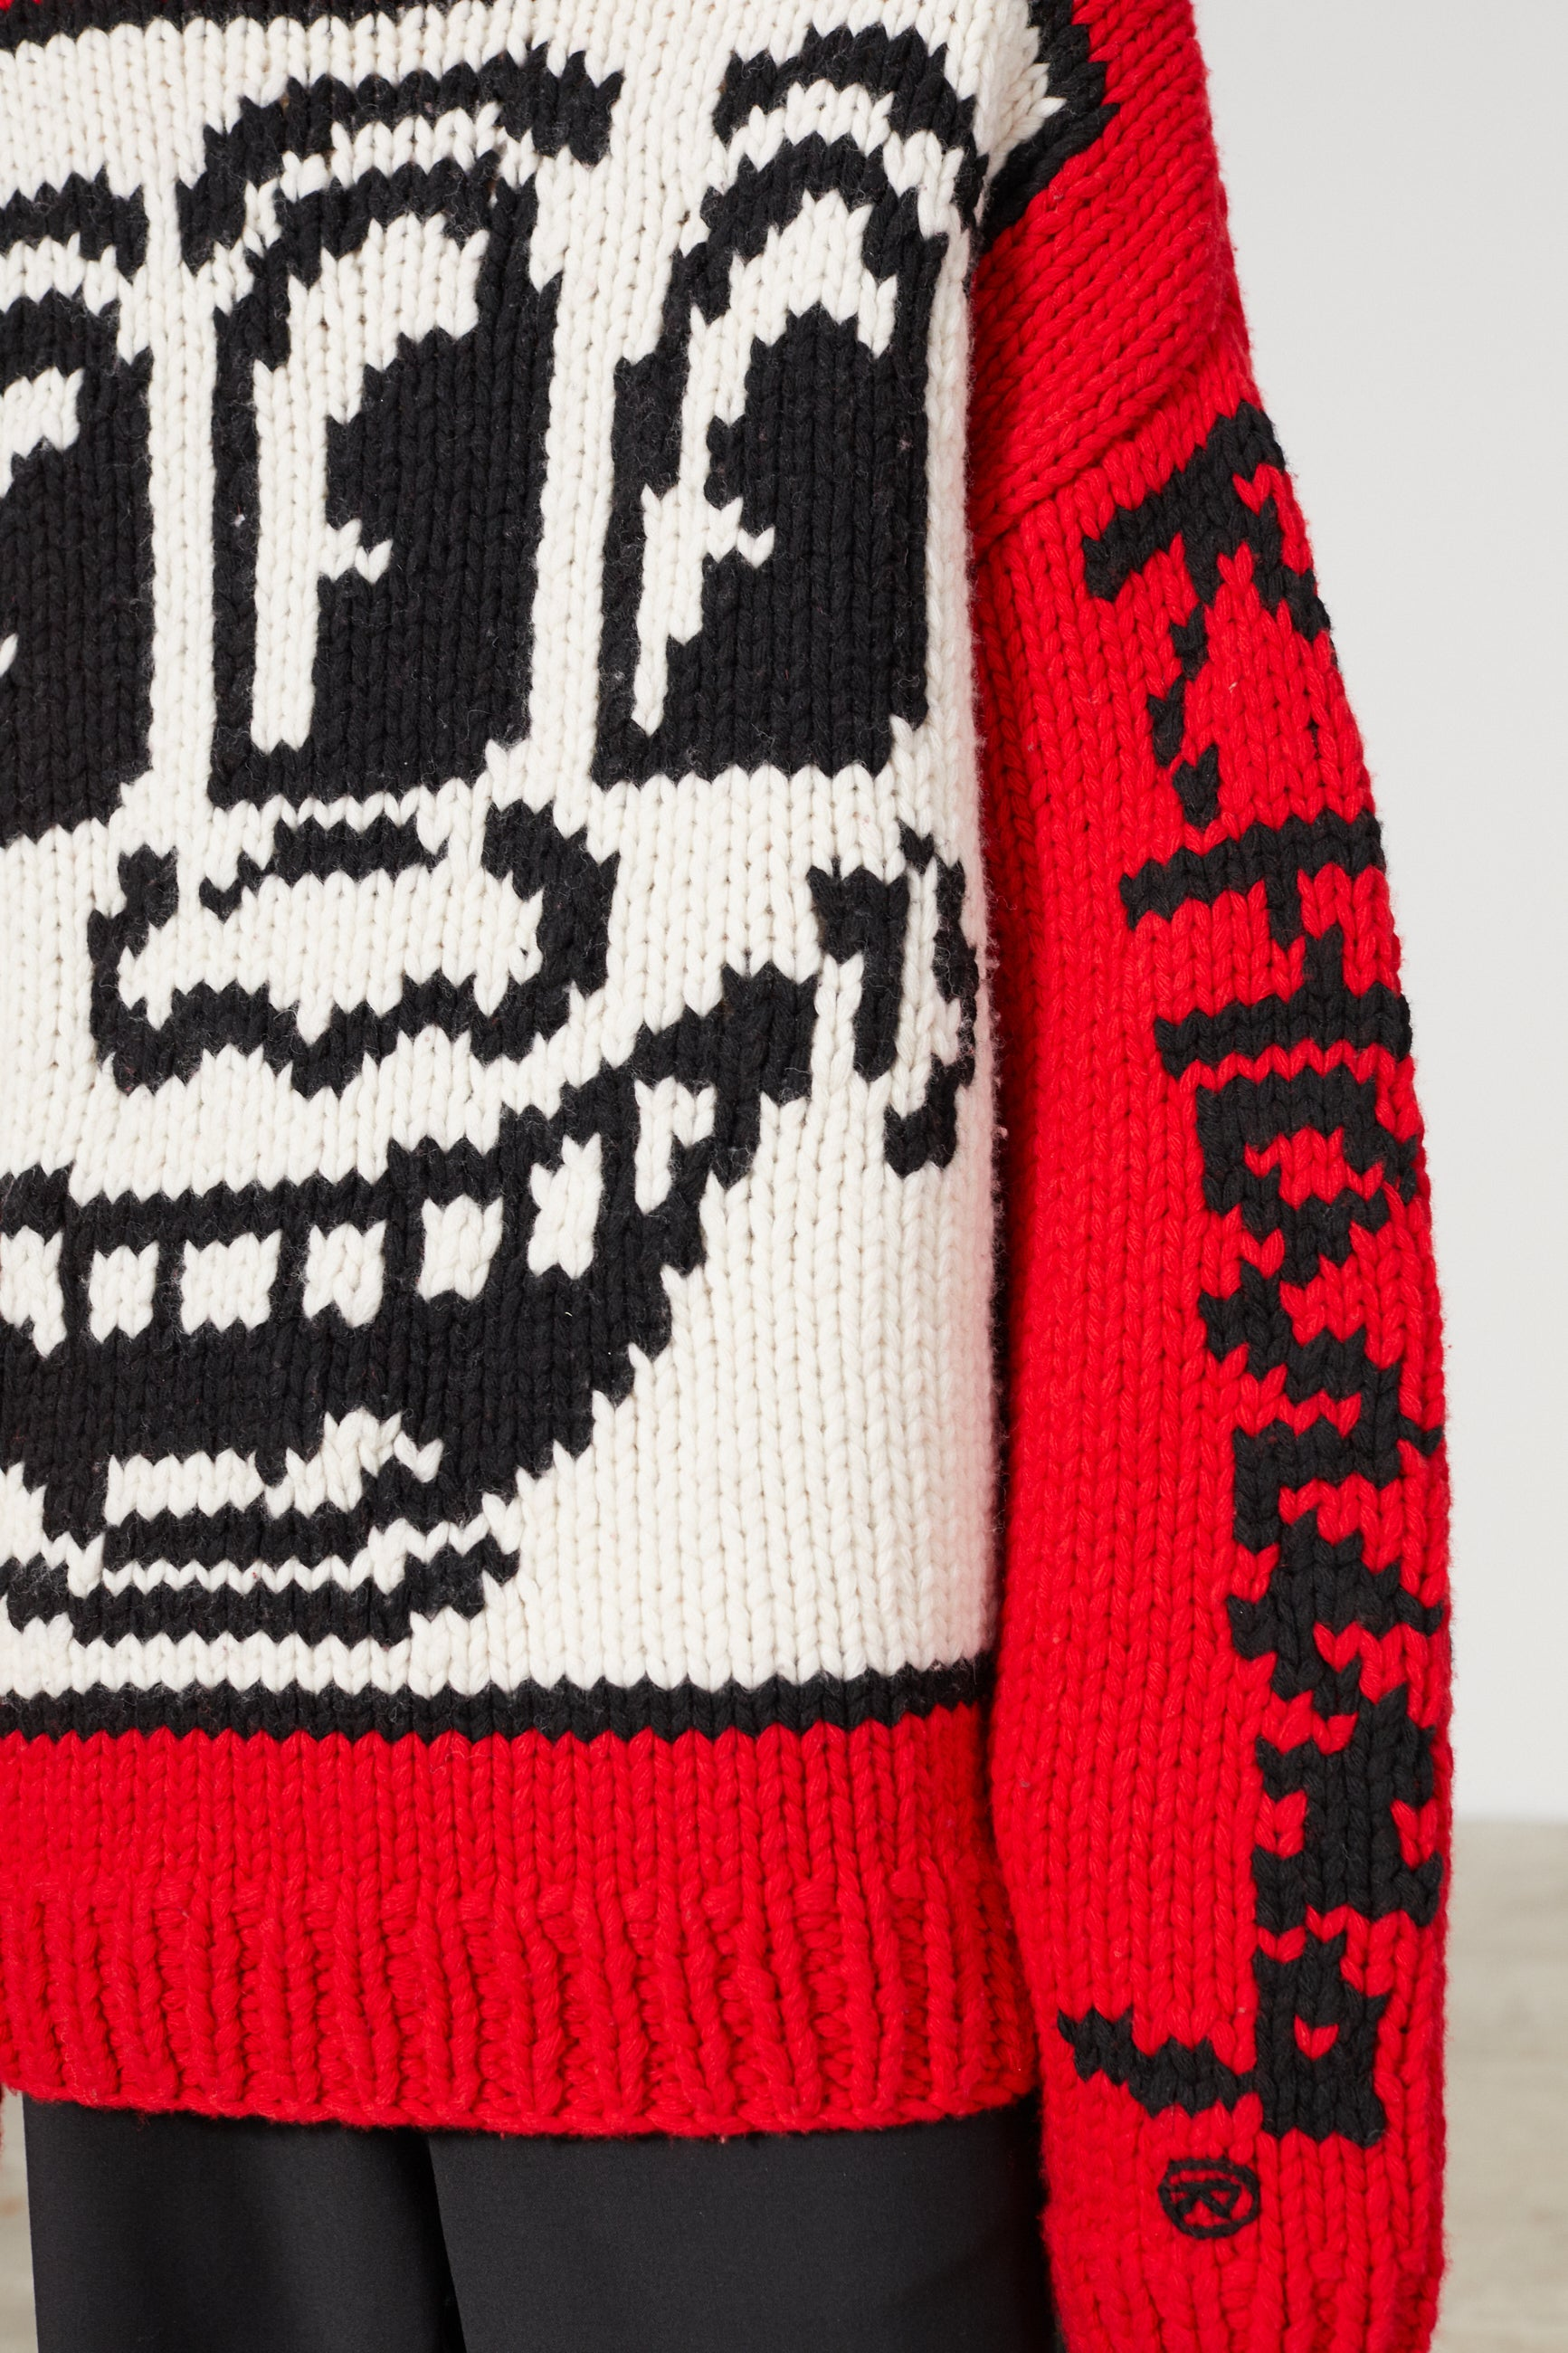 ANDY KEITH HARING KNIT SWEATER